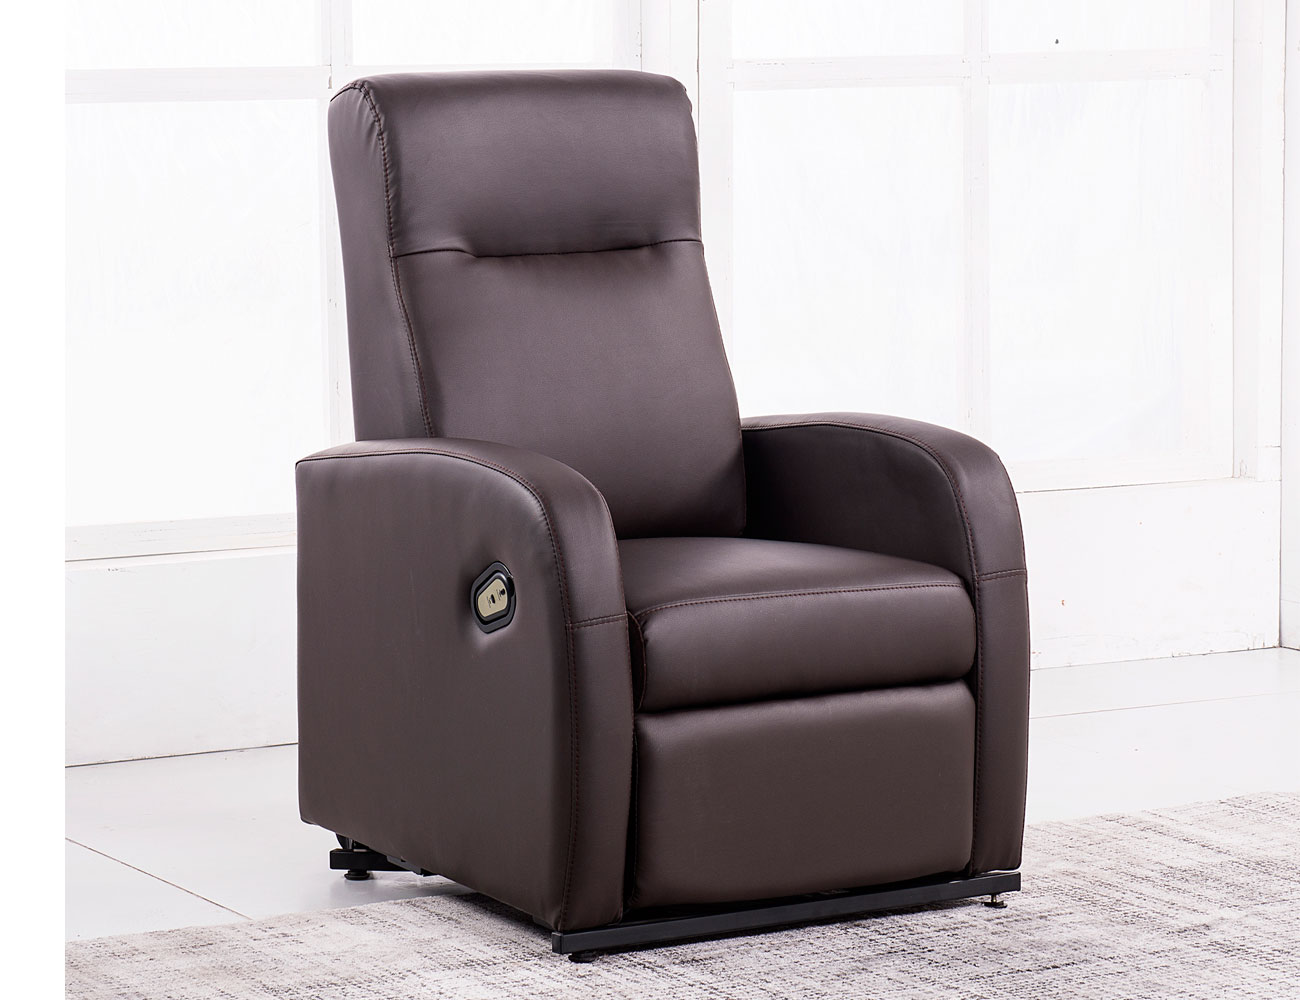 Sillon relax palanca chocolate 3